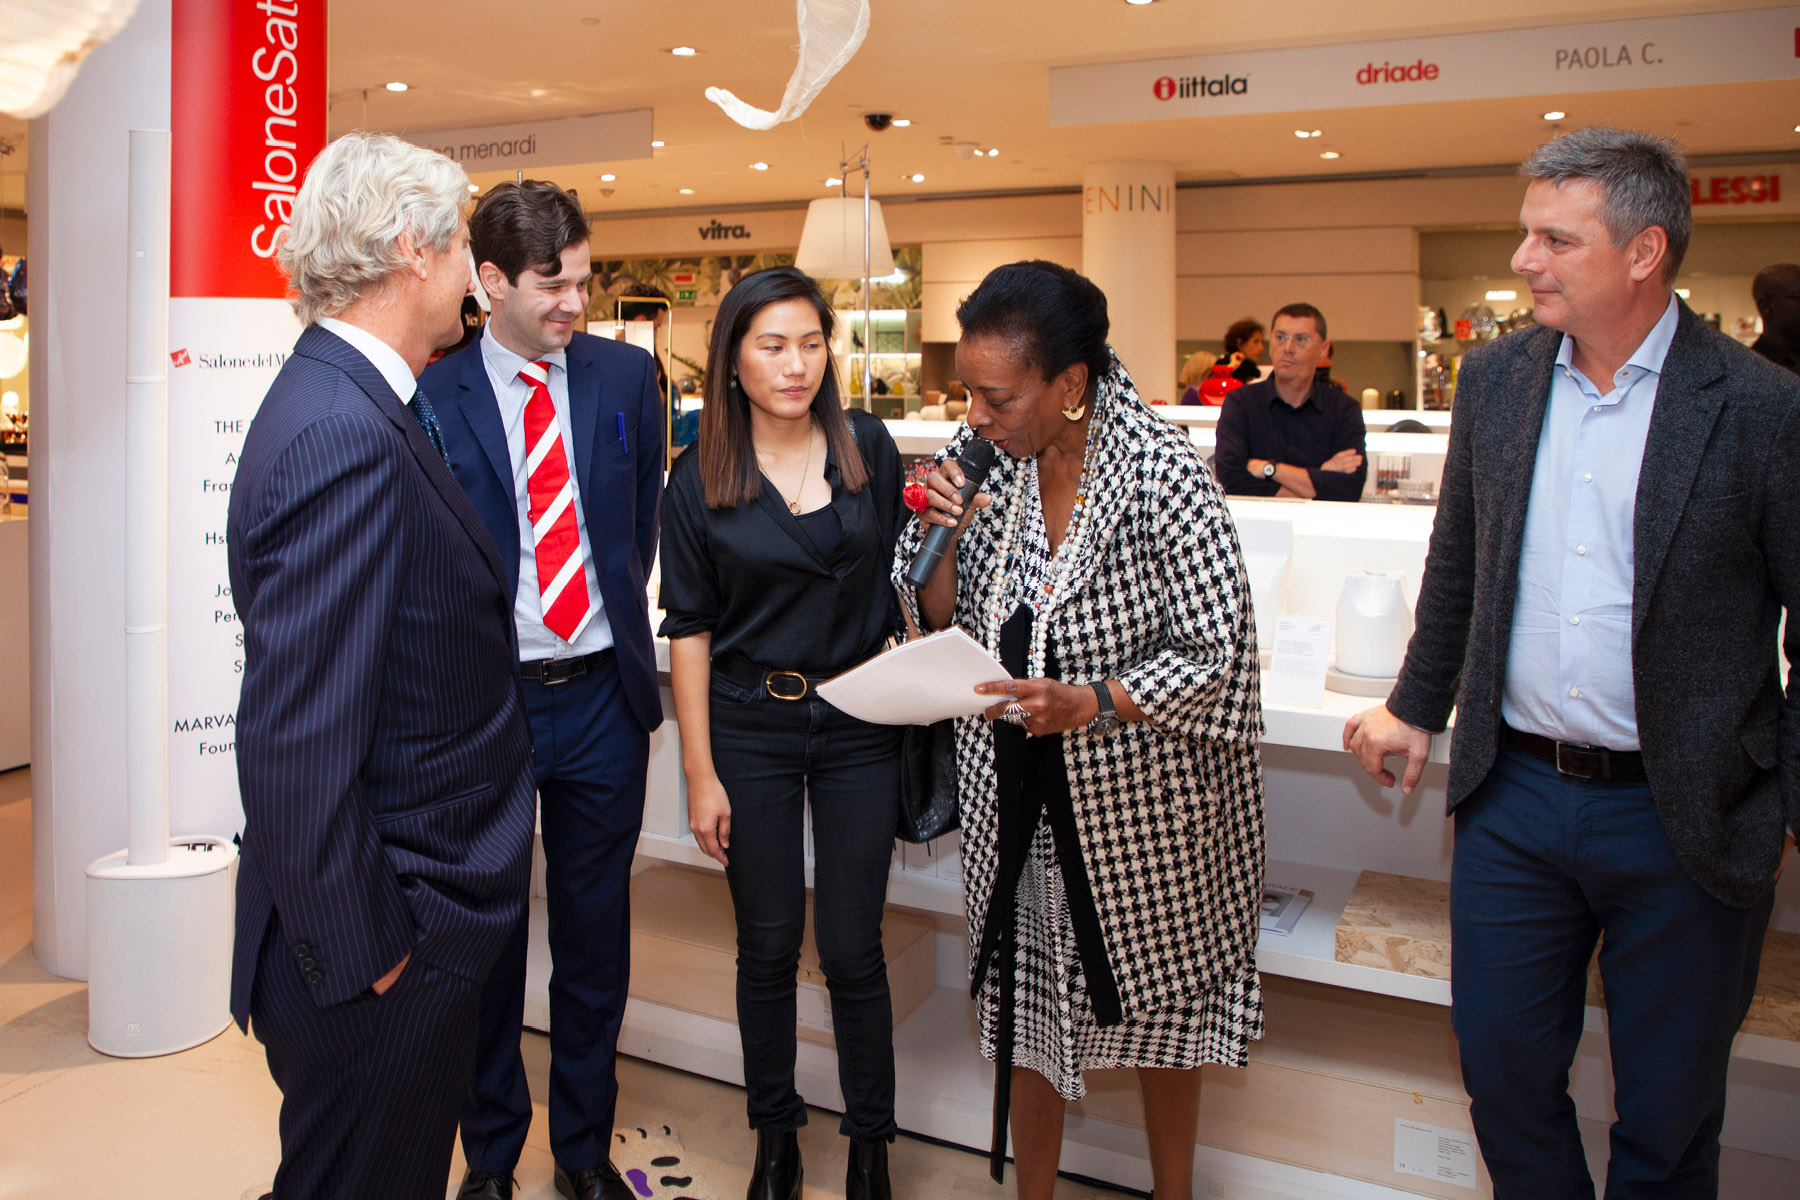 Claudio Luti, Jean-François C. Lemay, Mirei Monticelli, Marva Griffin Wilshire and Pierluigi Cocchini at the opening on 17 October 2019